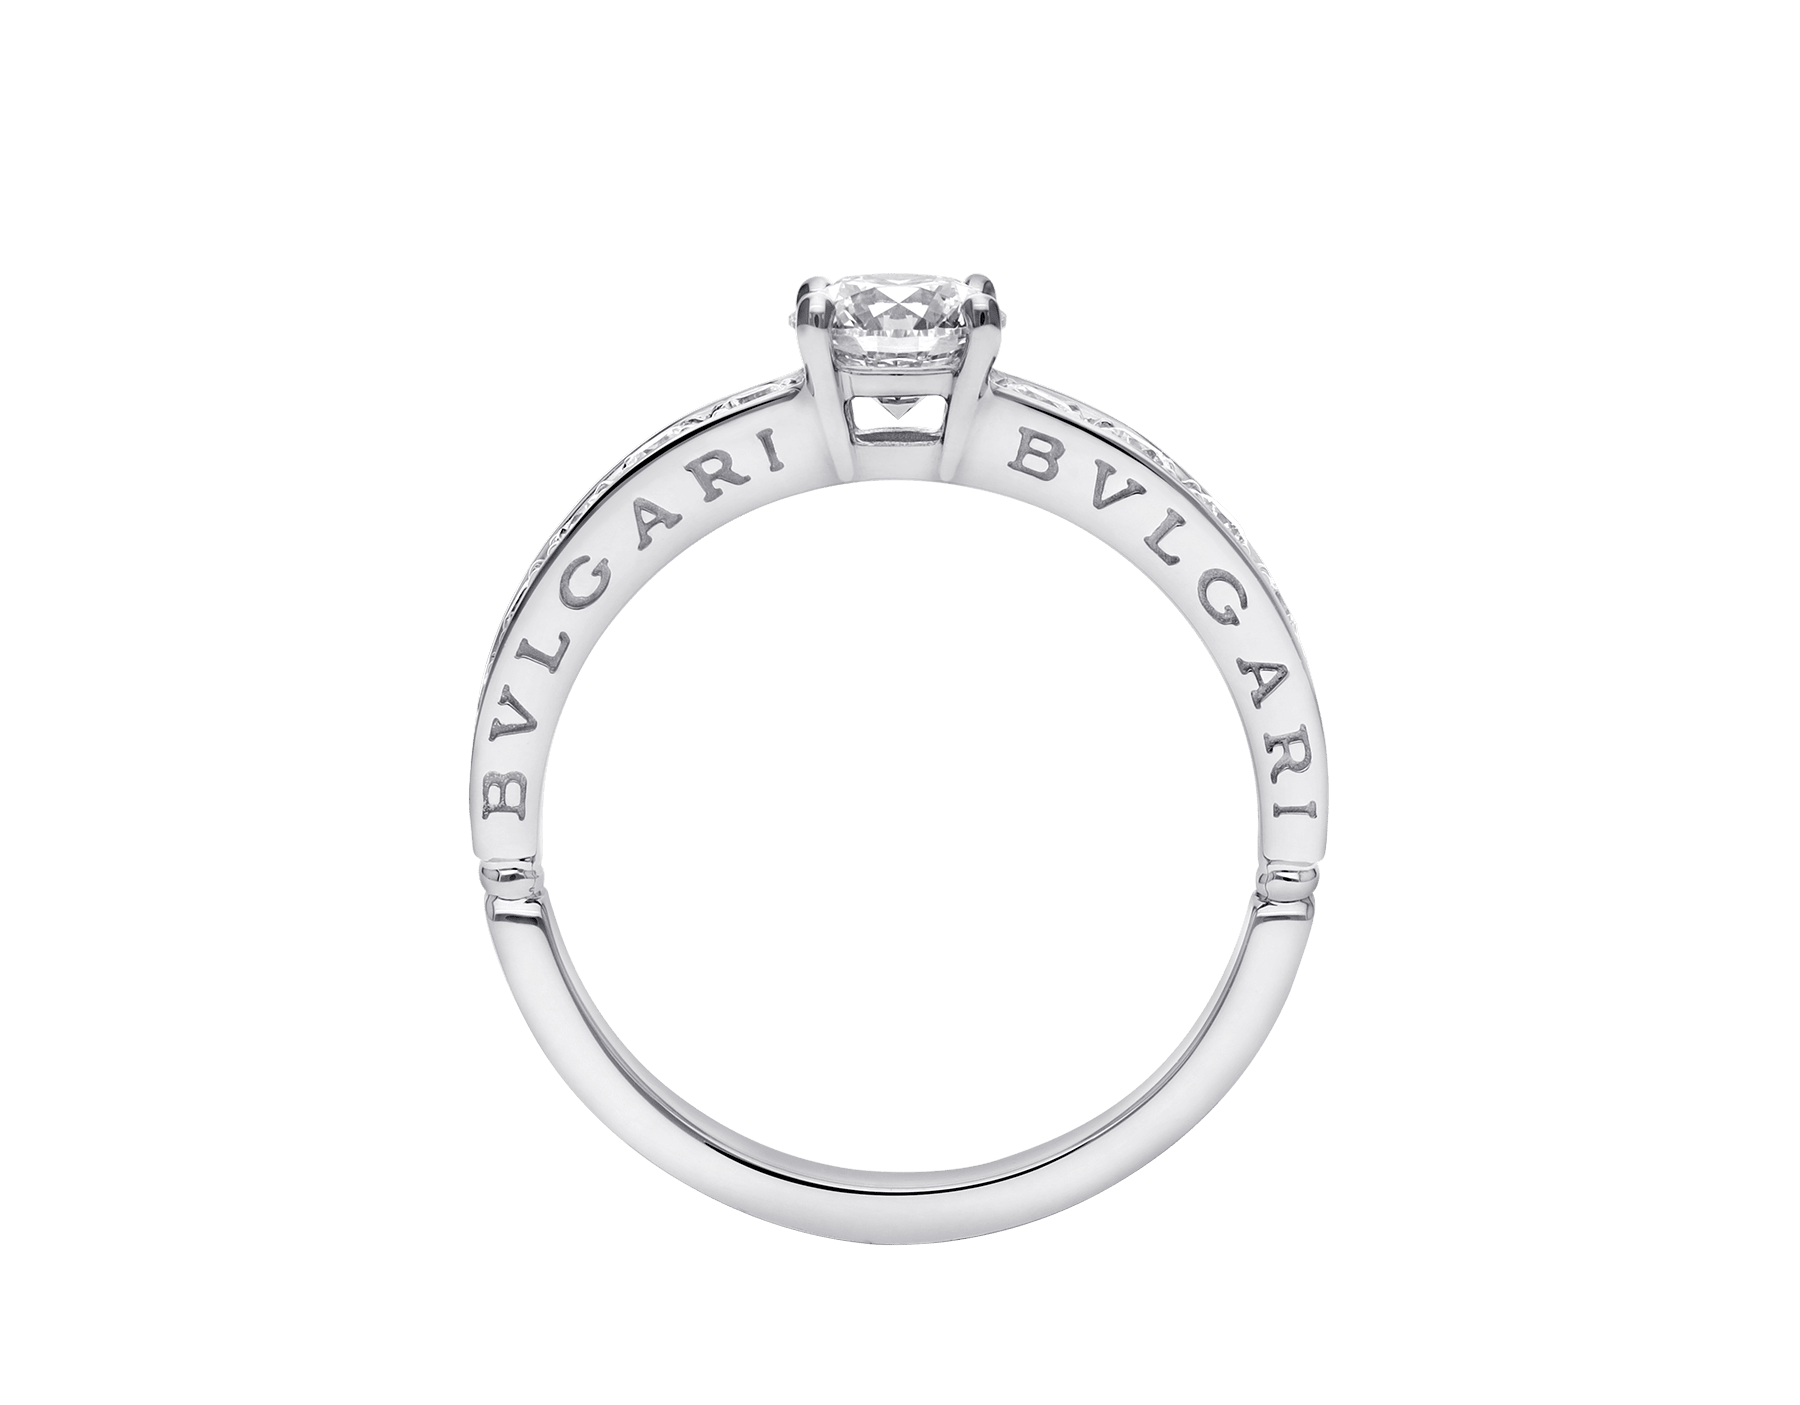 Dedicata a Venezia: 1503 platinum ring set with a round brilliant cut diamond and pavé diamonds 343211 image 4